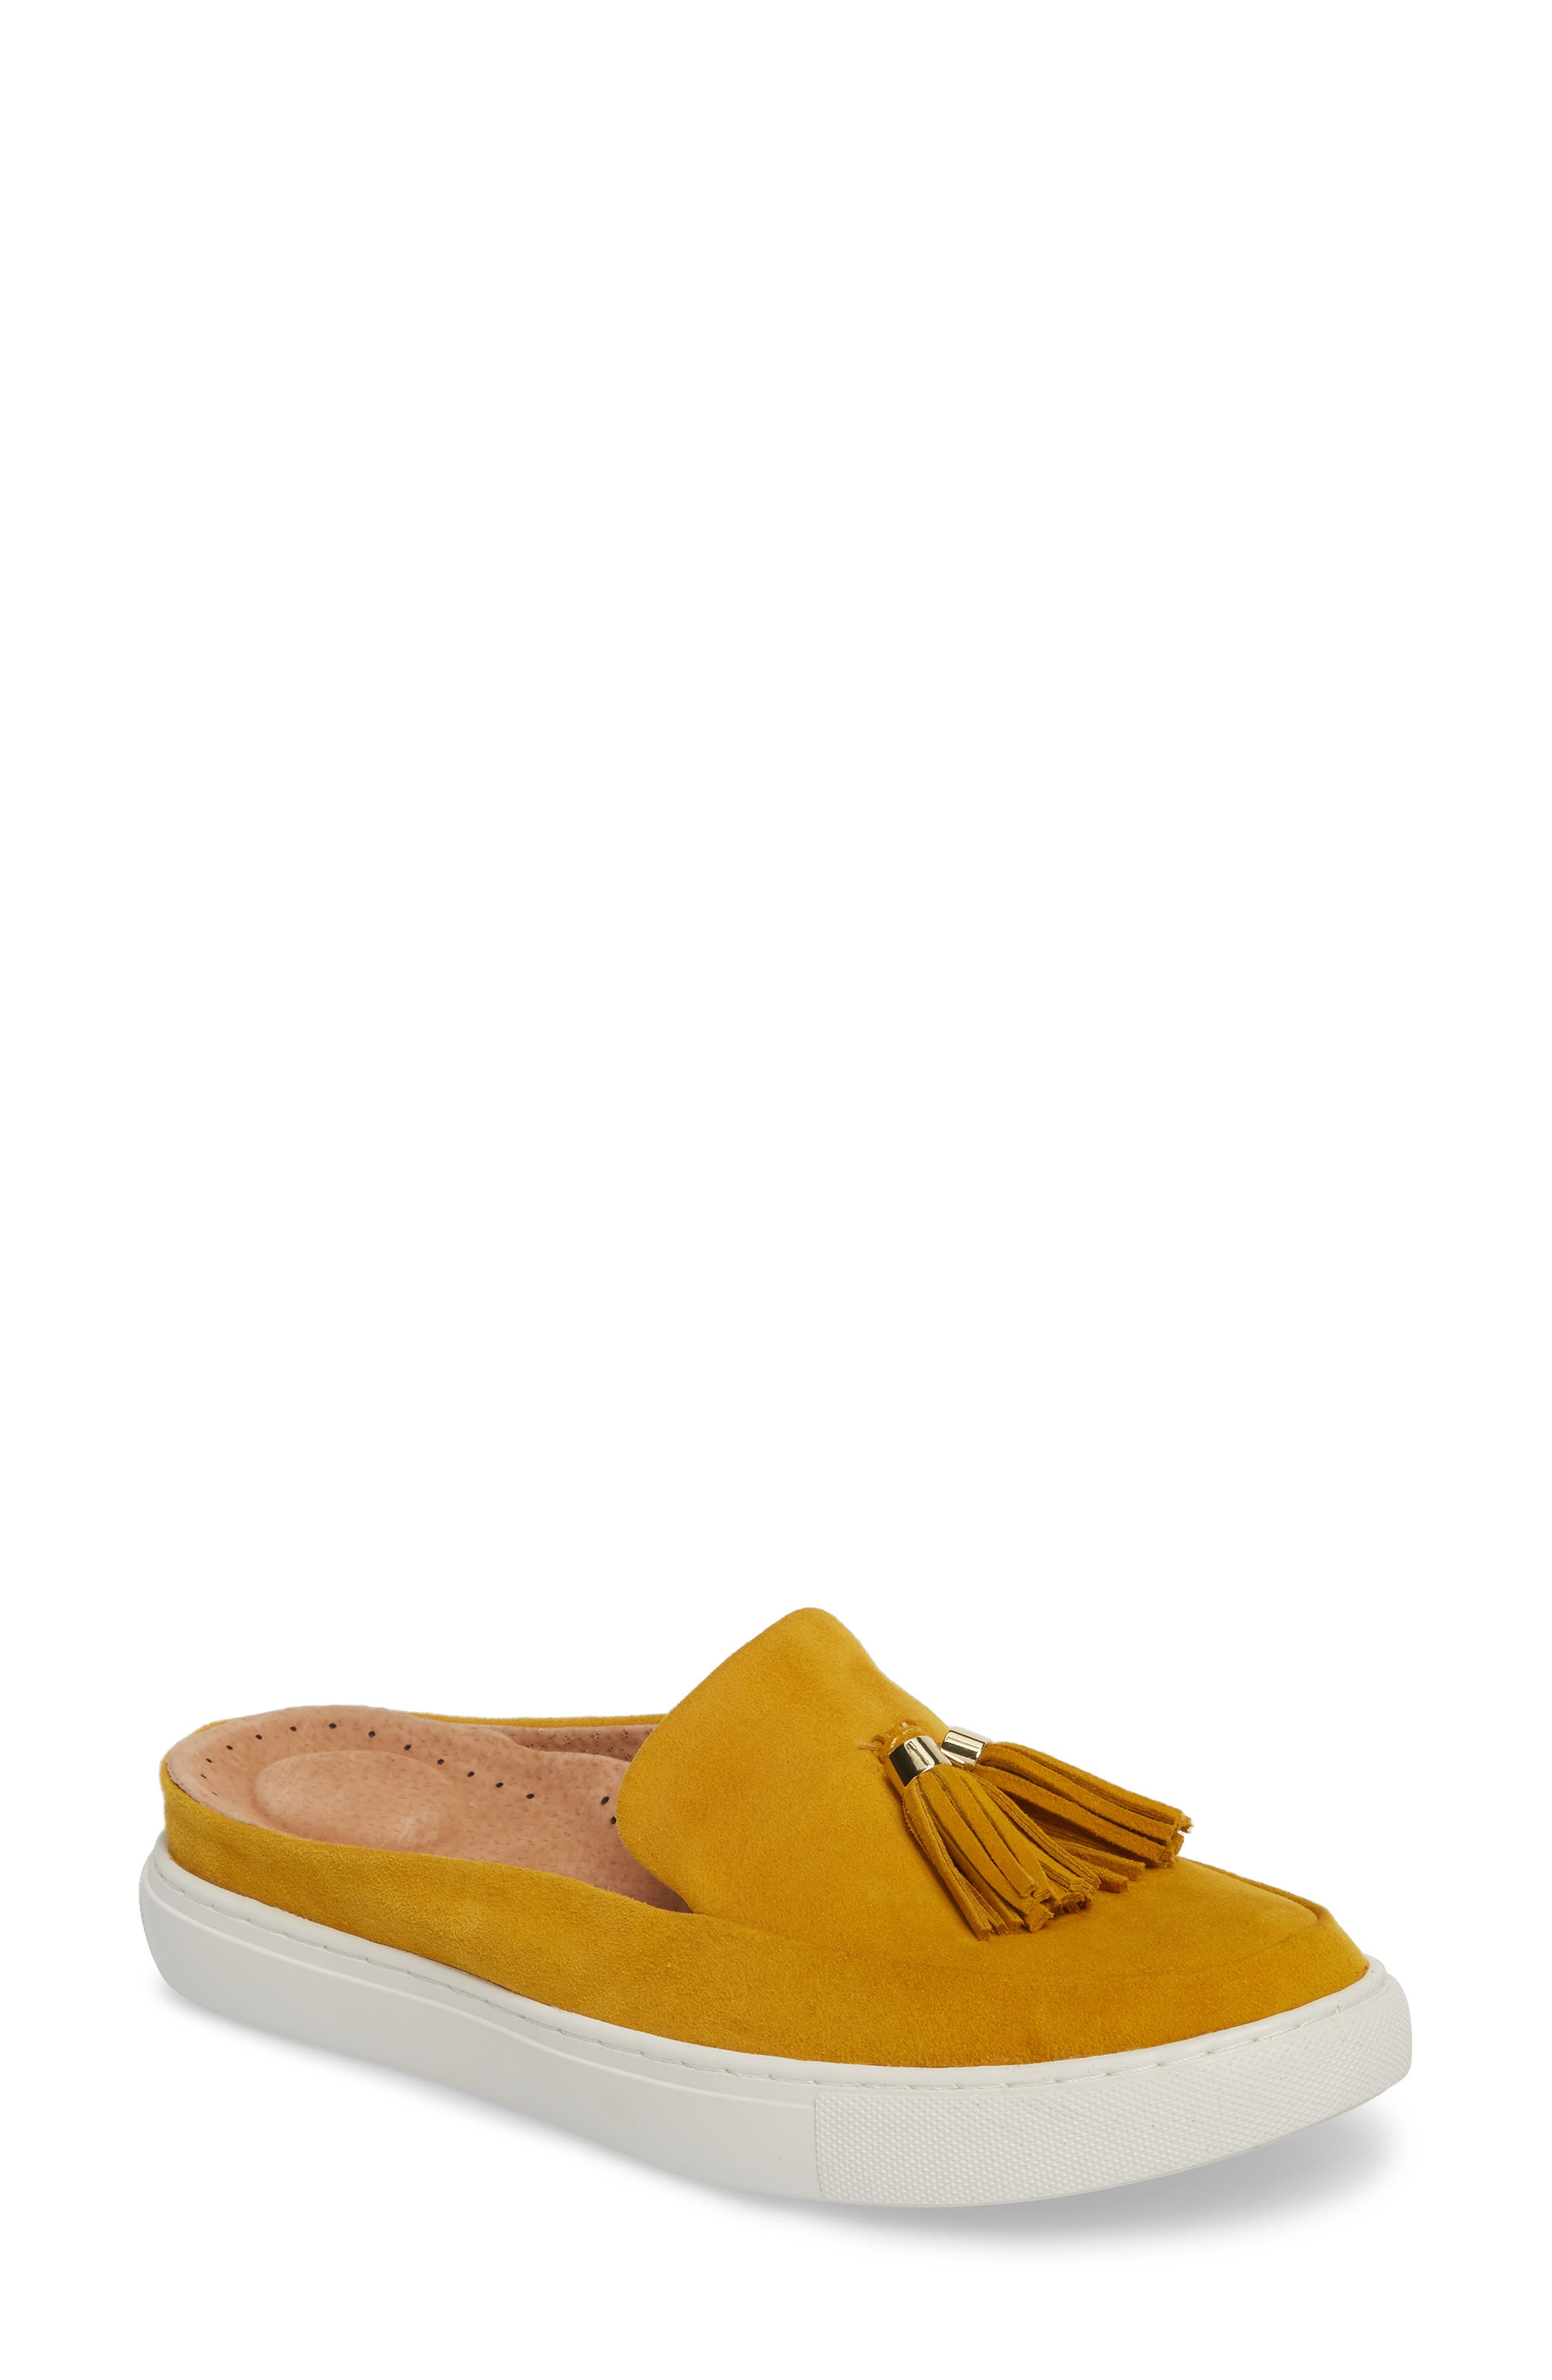 Gentle Souls Rory Loafer Mule Sneaker (Women)